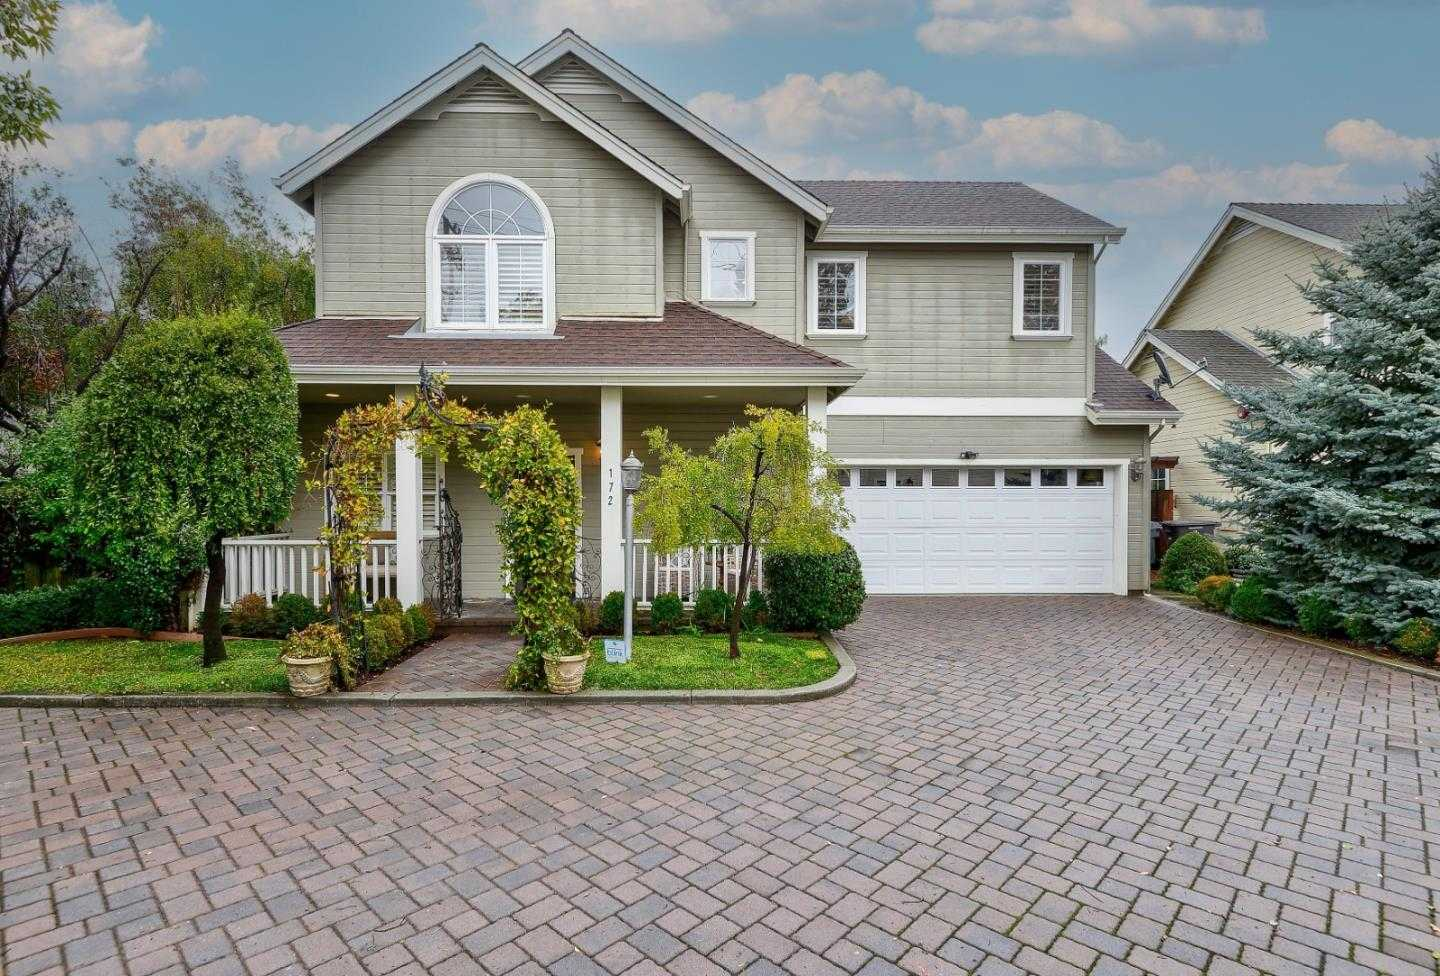 $1,895,000 - 3Br/3Ba -  for Sale in Mountain View